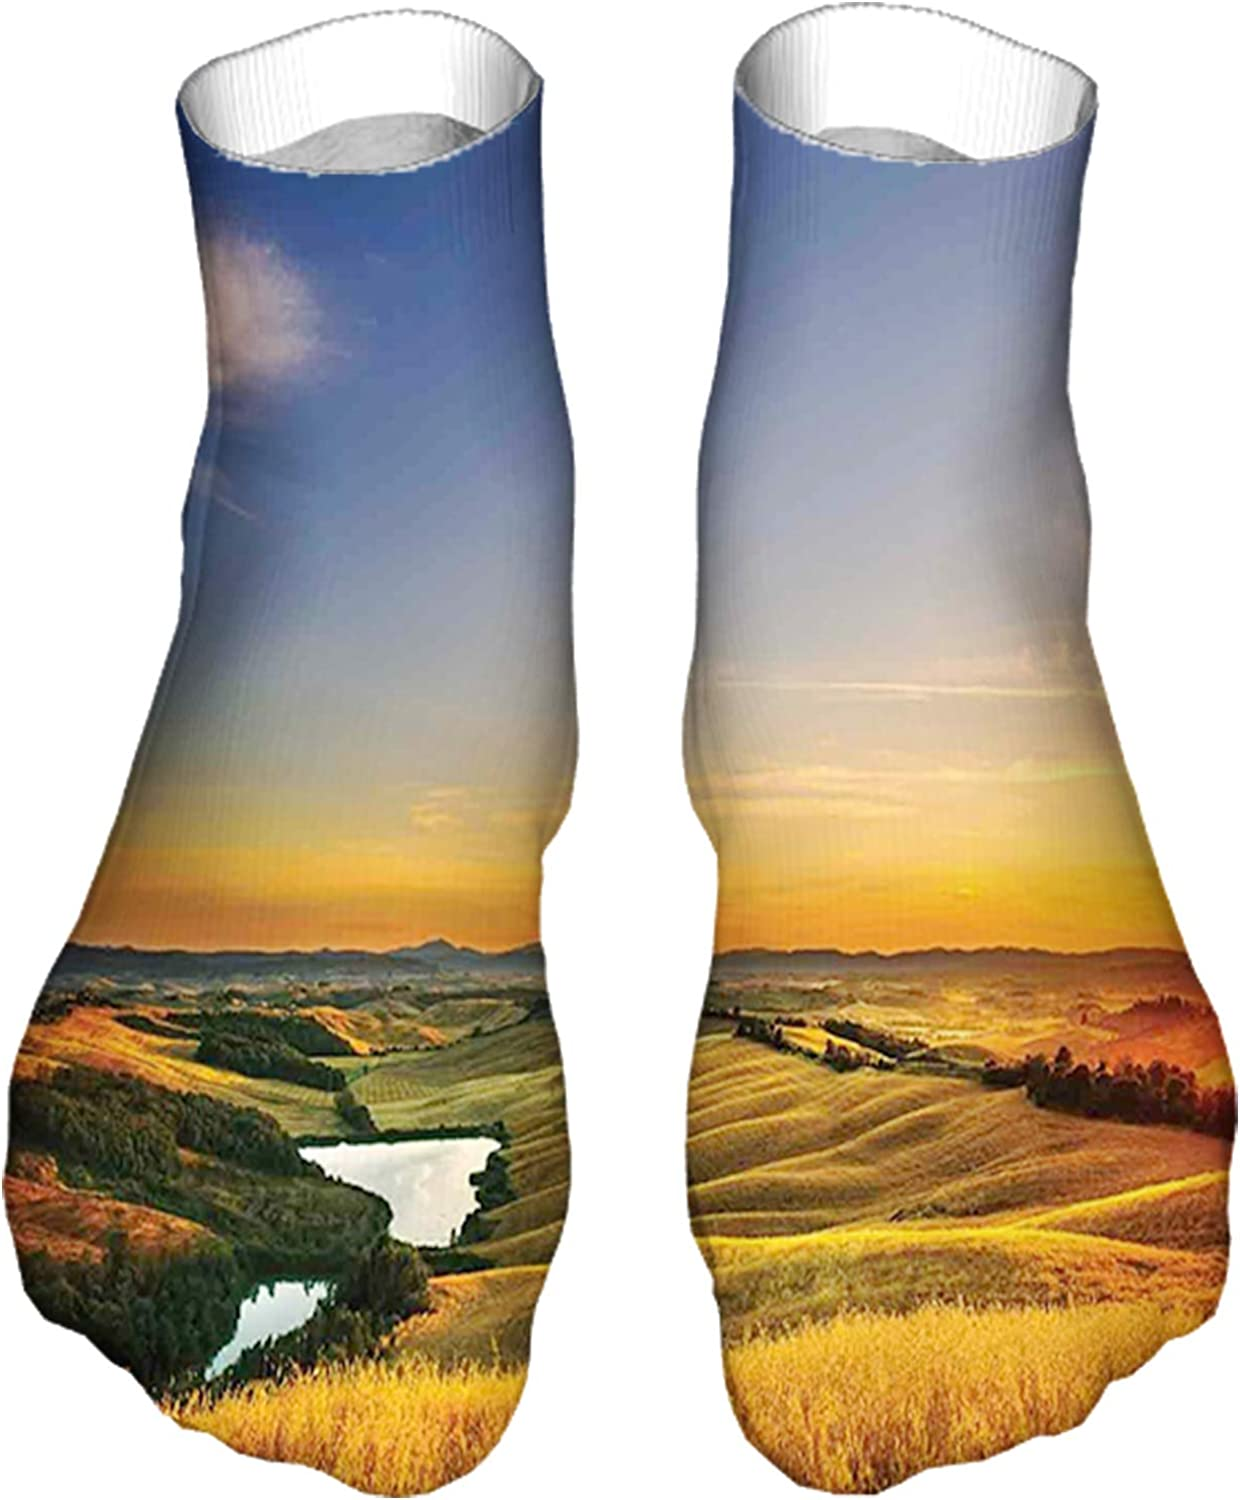 Men's and Women's Fun Socks Printed Cool Novelty Funny Socks,Magical Photo of Mediterranean Rural in The Valley